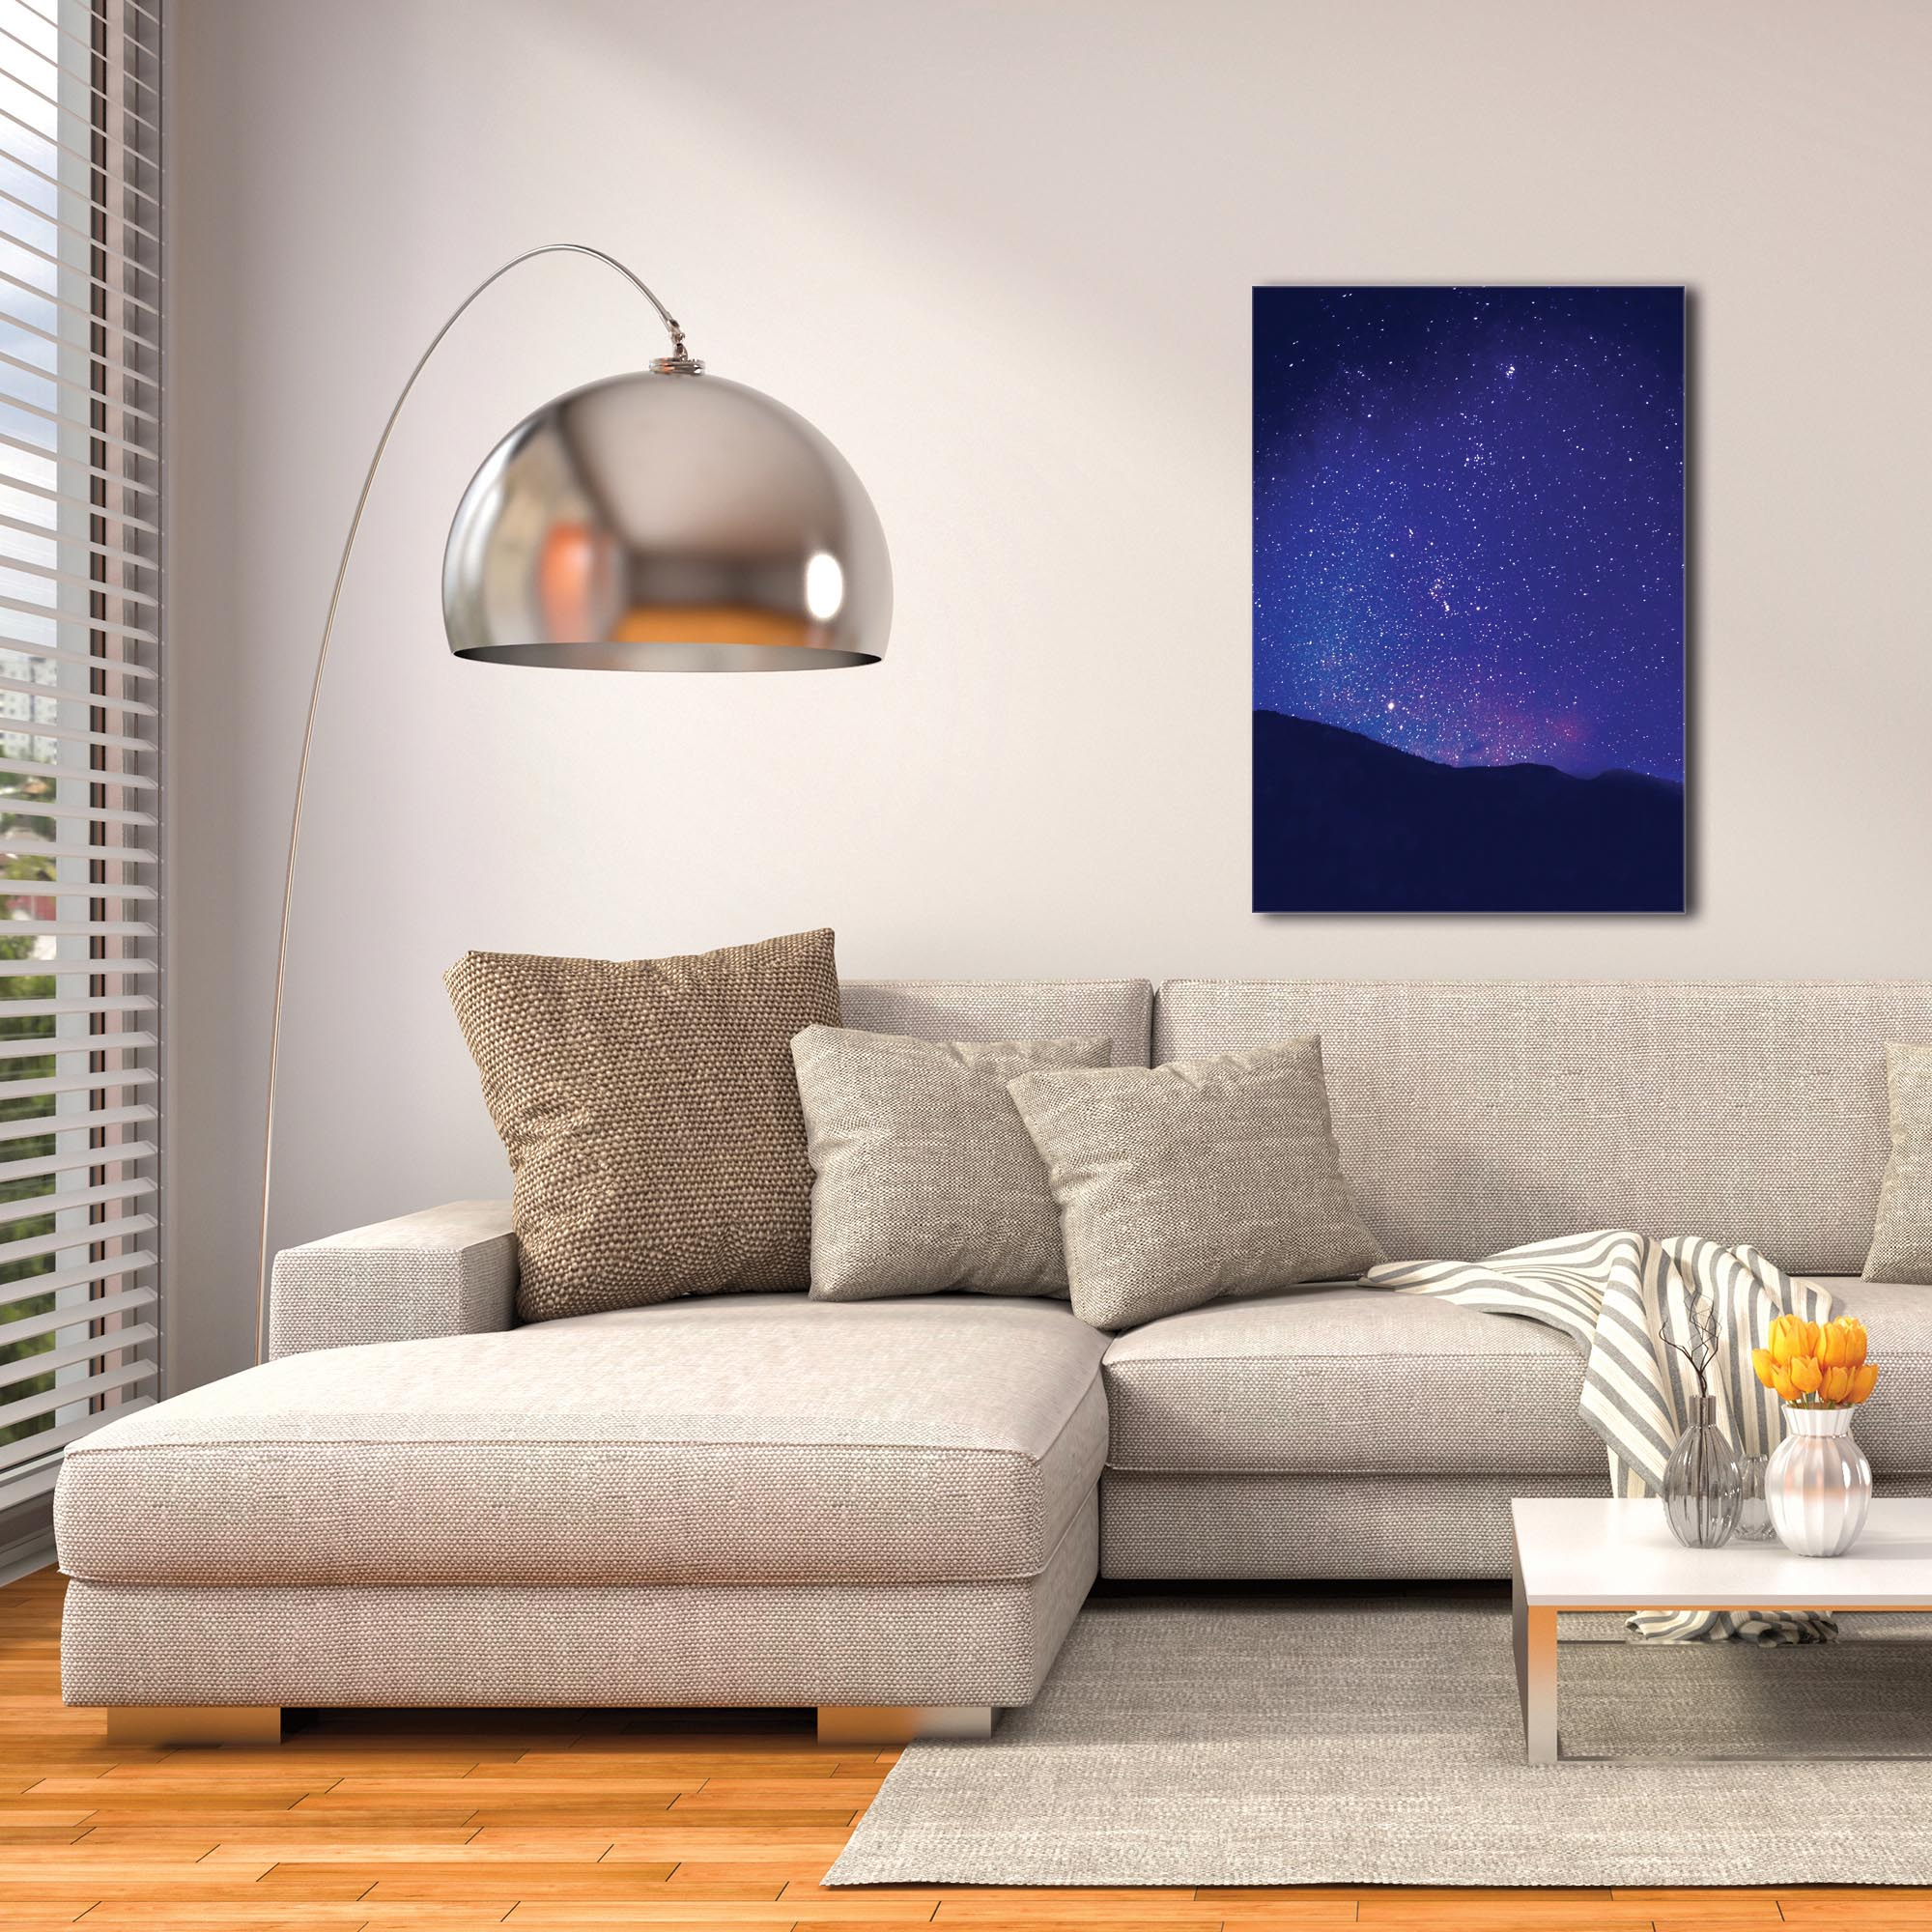 Nature Photography 'Satin Sky' - Night Sky Art on Metal or Plexiglass - Image 3